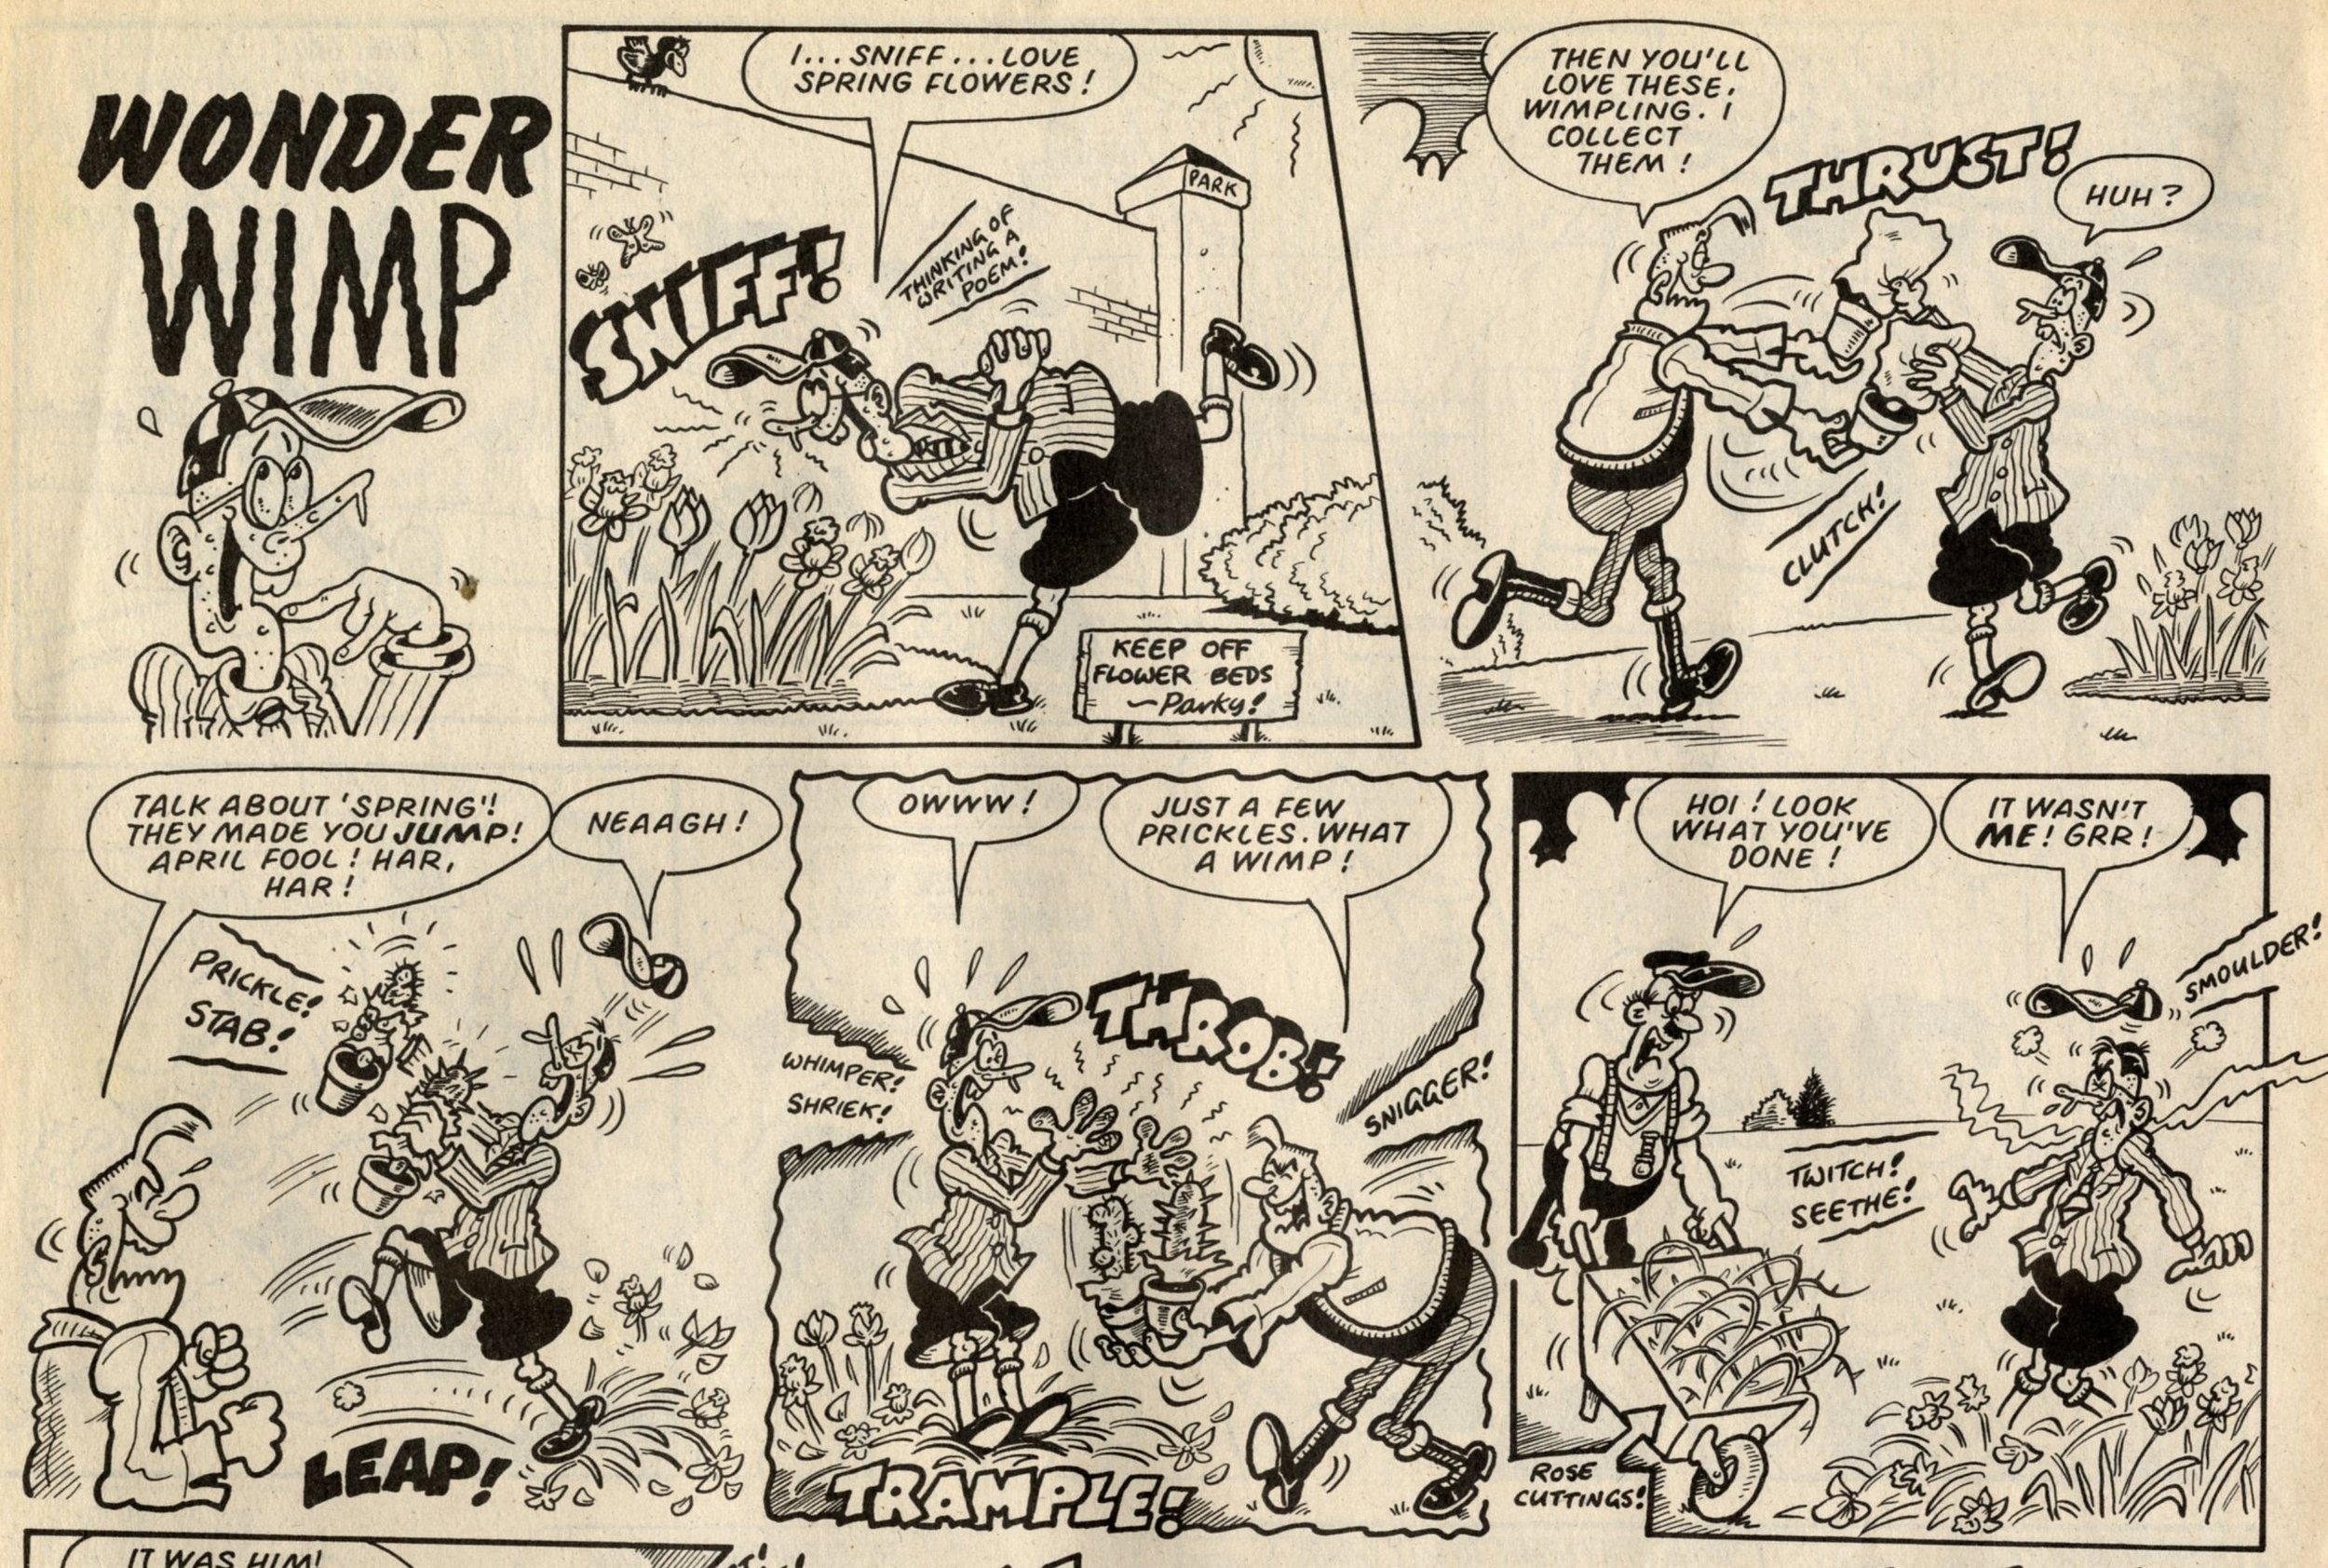 Wonder Wimp: Nigel Edwards (artist)